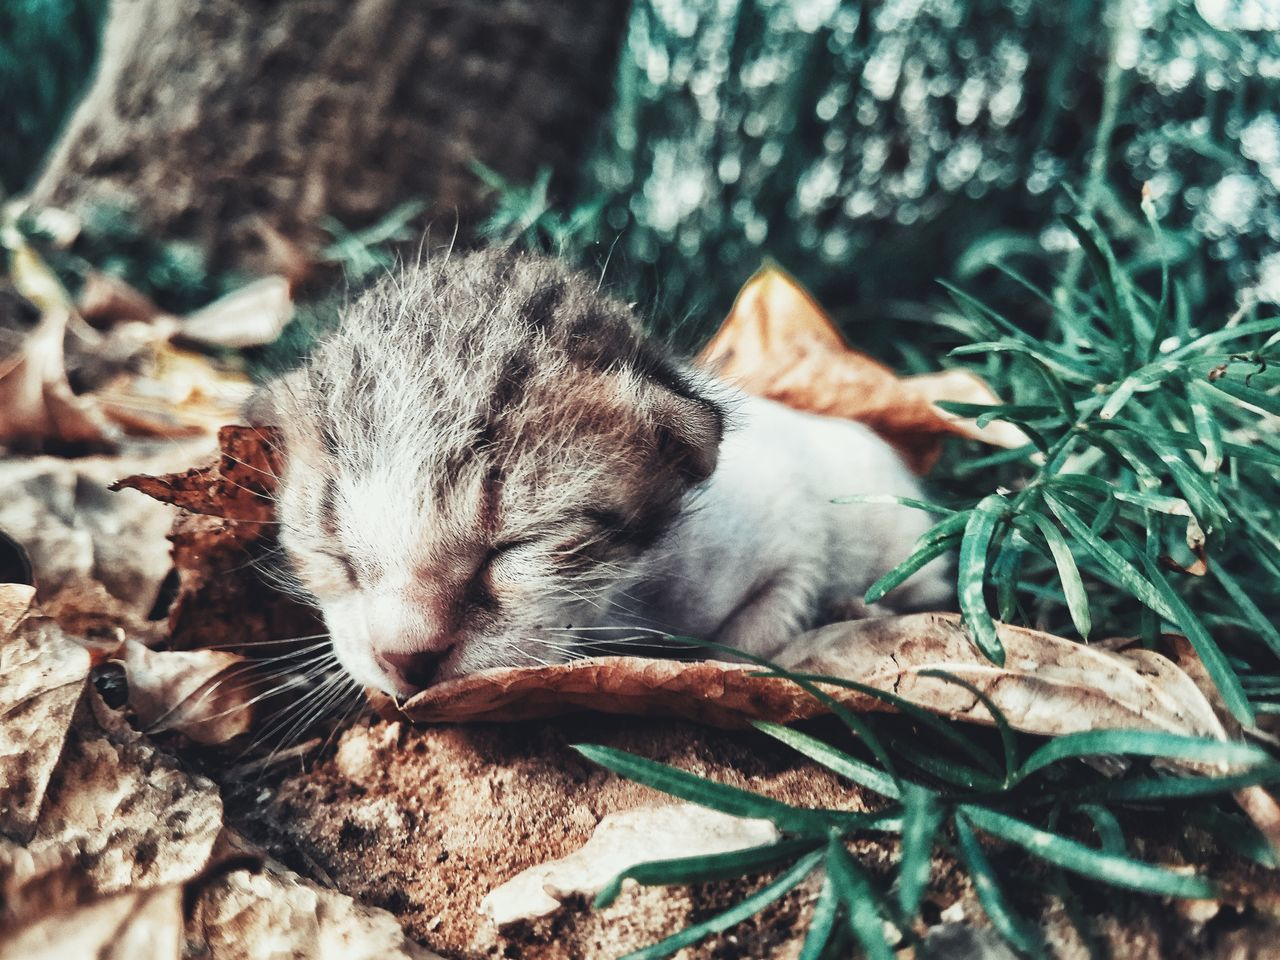 Just Was Born Cat Cat♡ Cats Cat Lovers Catsofinstagram Cats Of EyeEm Catoftheday Cats 🐱 Catlovers Cat Photography Born Justborn Animals Animal Photography Animal Love Animallovers Animal Cute Pets Cute Cats Cutecats Professionalphotography Professional Israel First Eyeem Photo Fresh On Market 2016